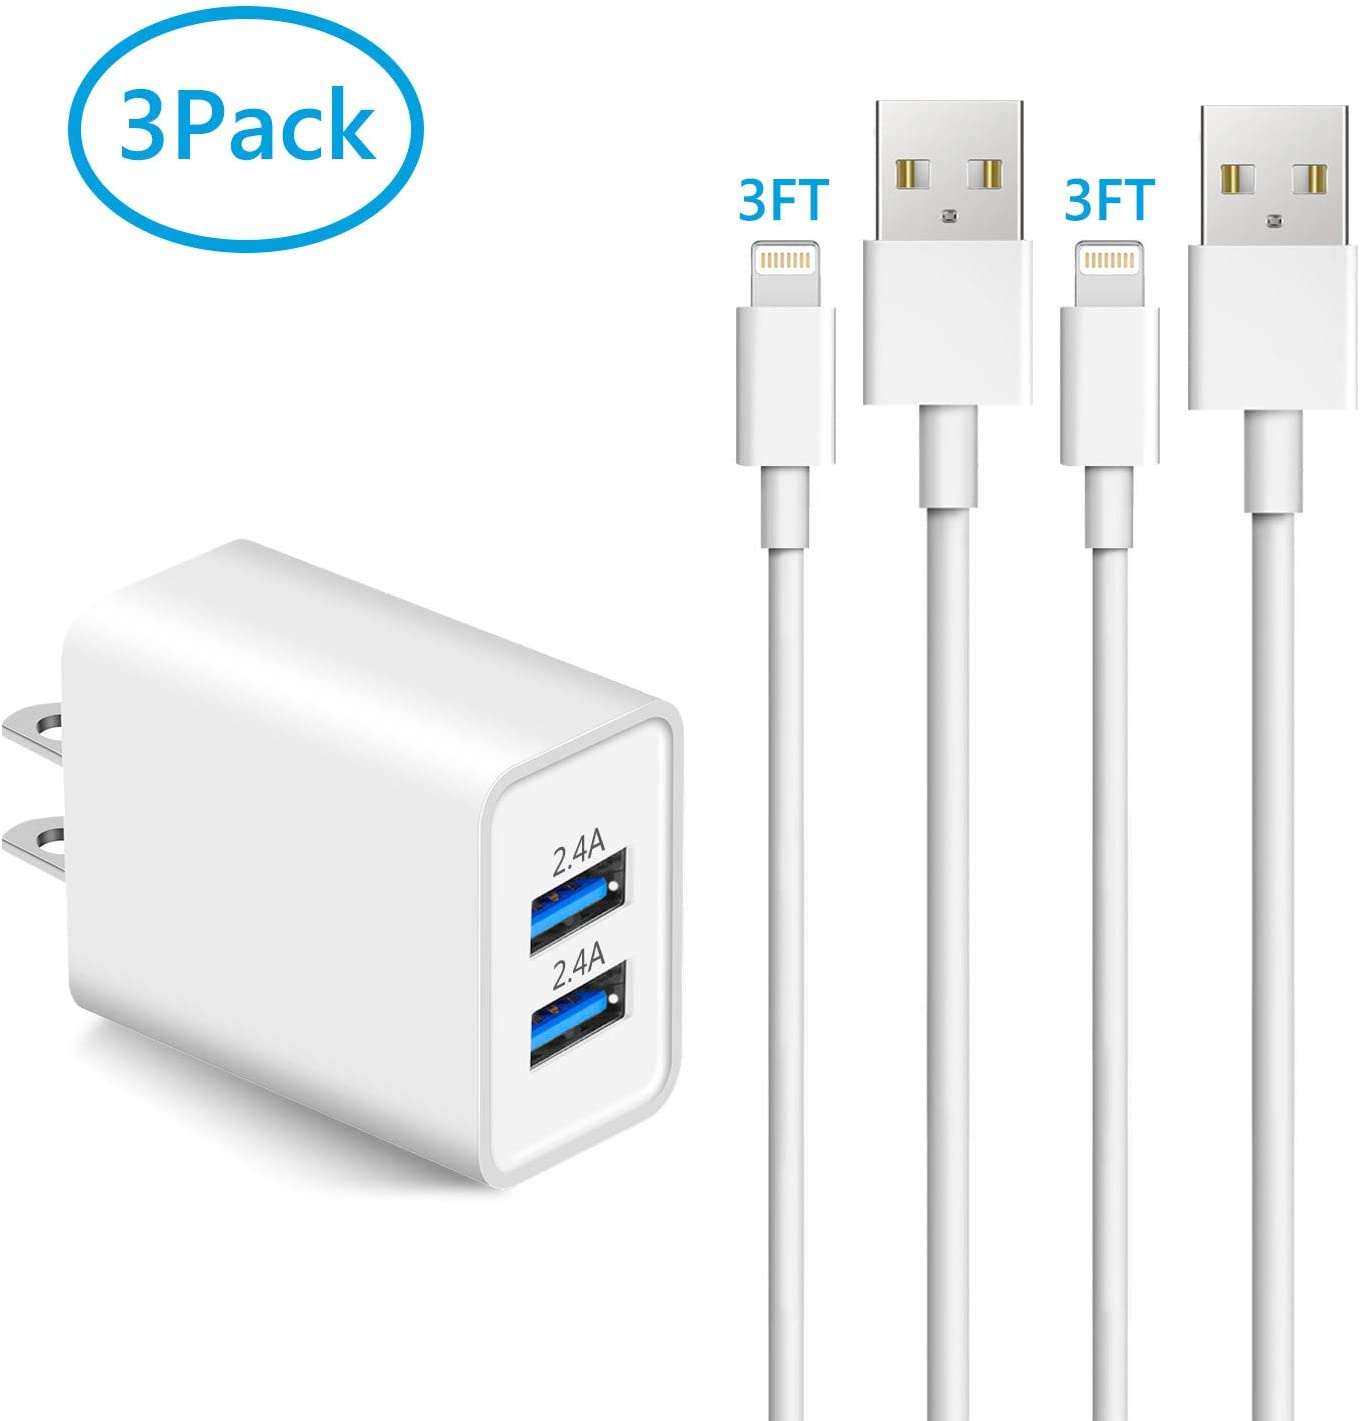 Sundix iPhone Charger, 24W Dual USB Wall Charger with 2Pack Lightning Cable (3FT+6FT) Charge Sync Fast Charger (3-in-1) Compatible with iPhone 11/XS MAX/XR/X/8/7/6S/6/Plus/5/iPad/iPod